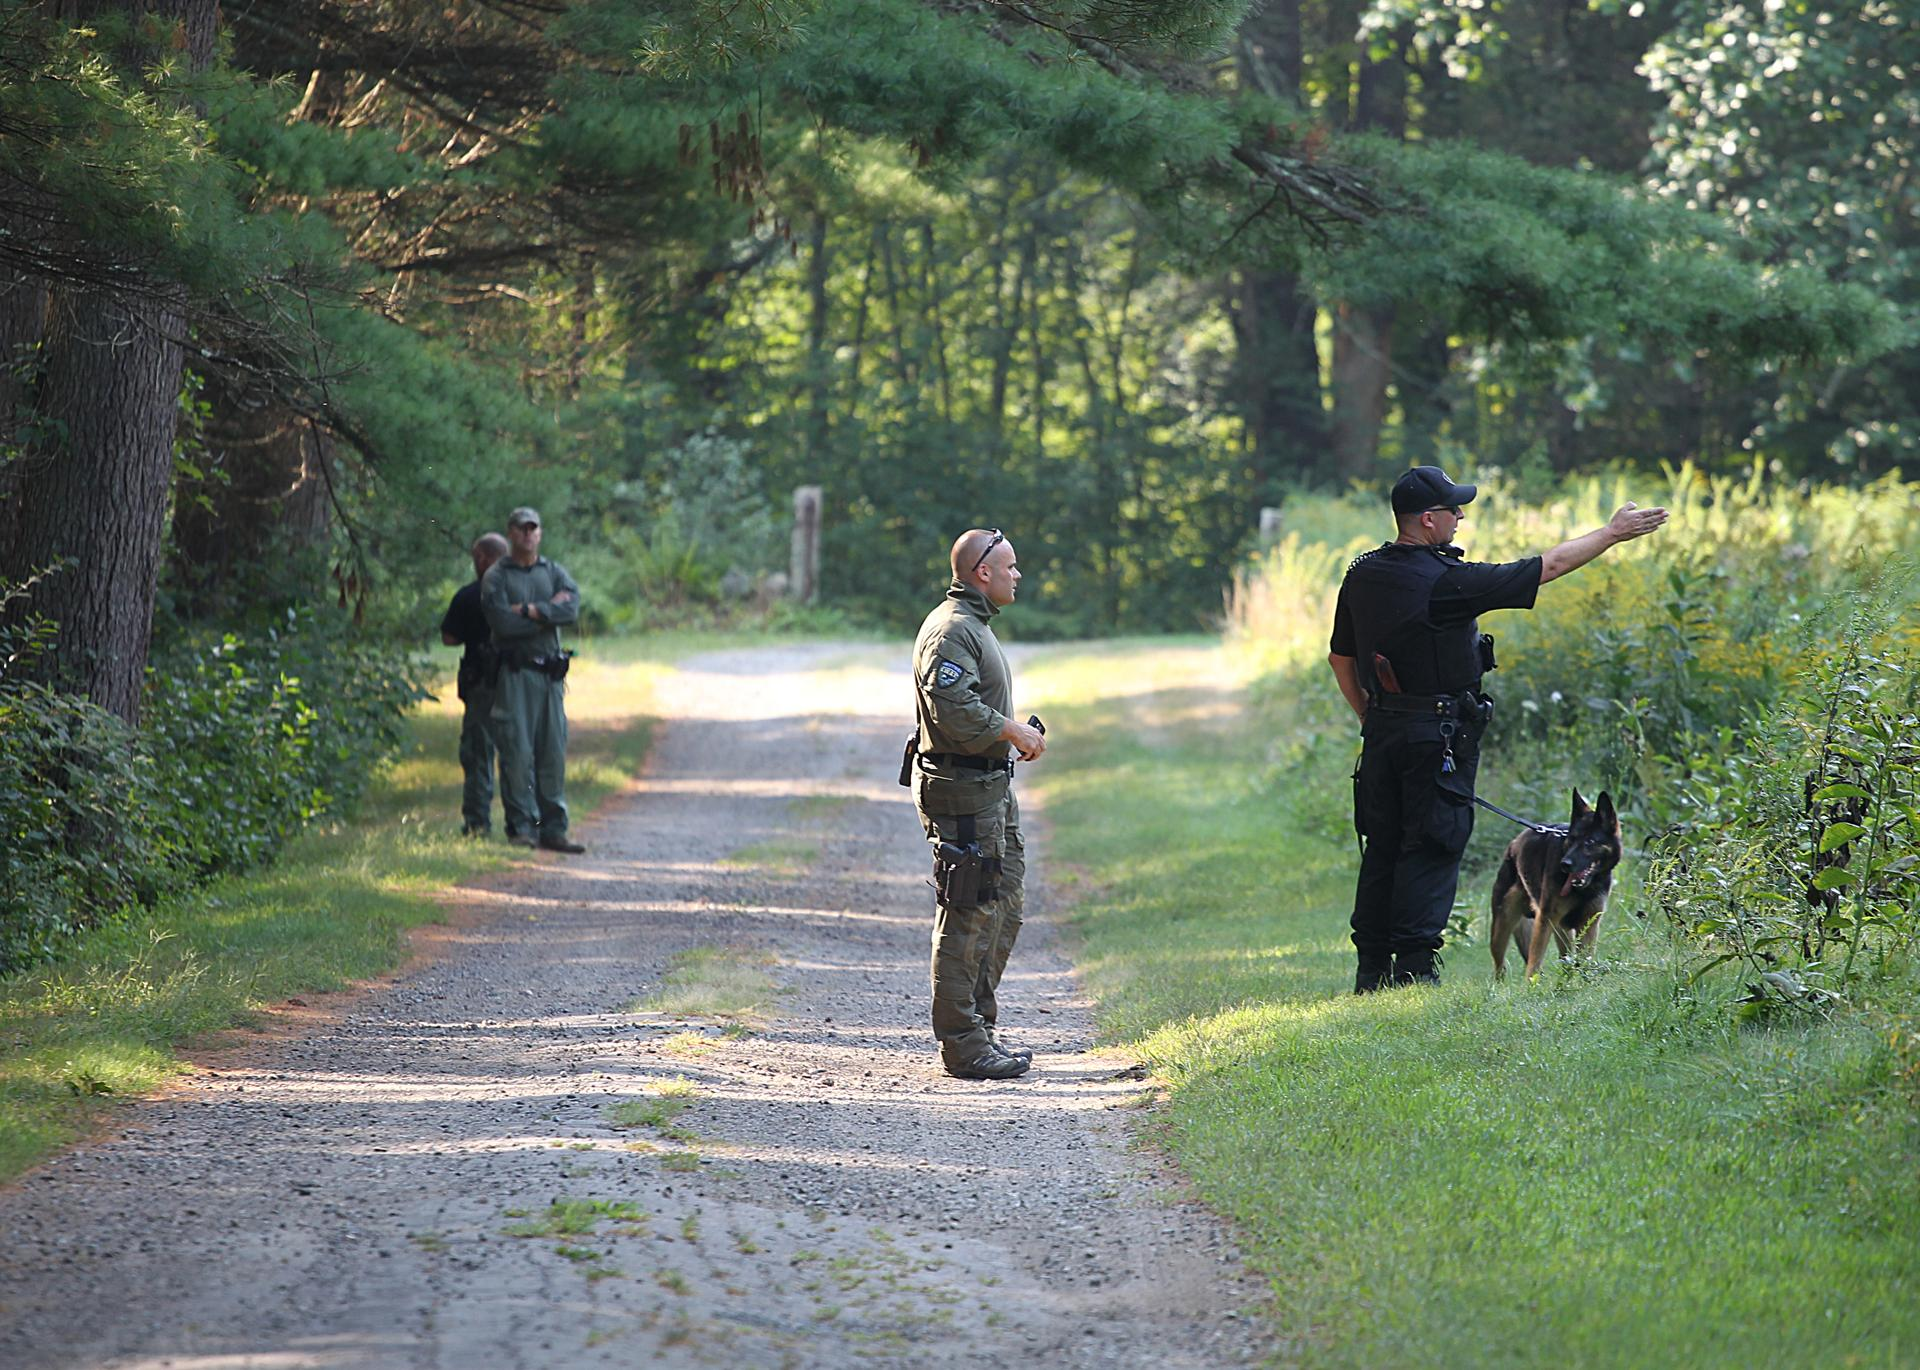 part time millis police officer who fabricated shooting account to millis police continued searching thursday for suspects near the cedariver reservation after officer bryan johnson